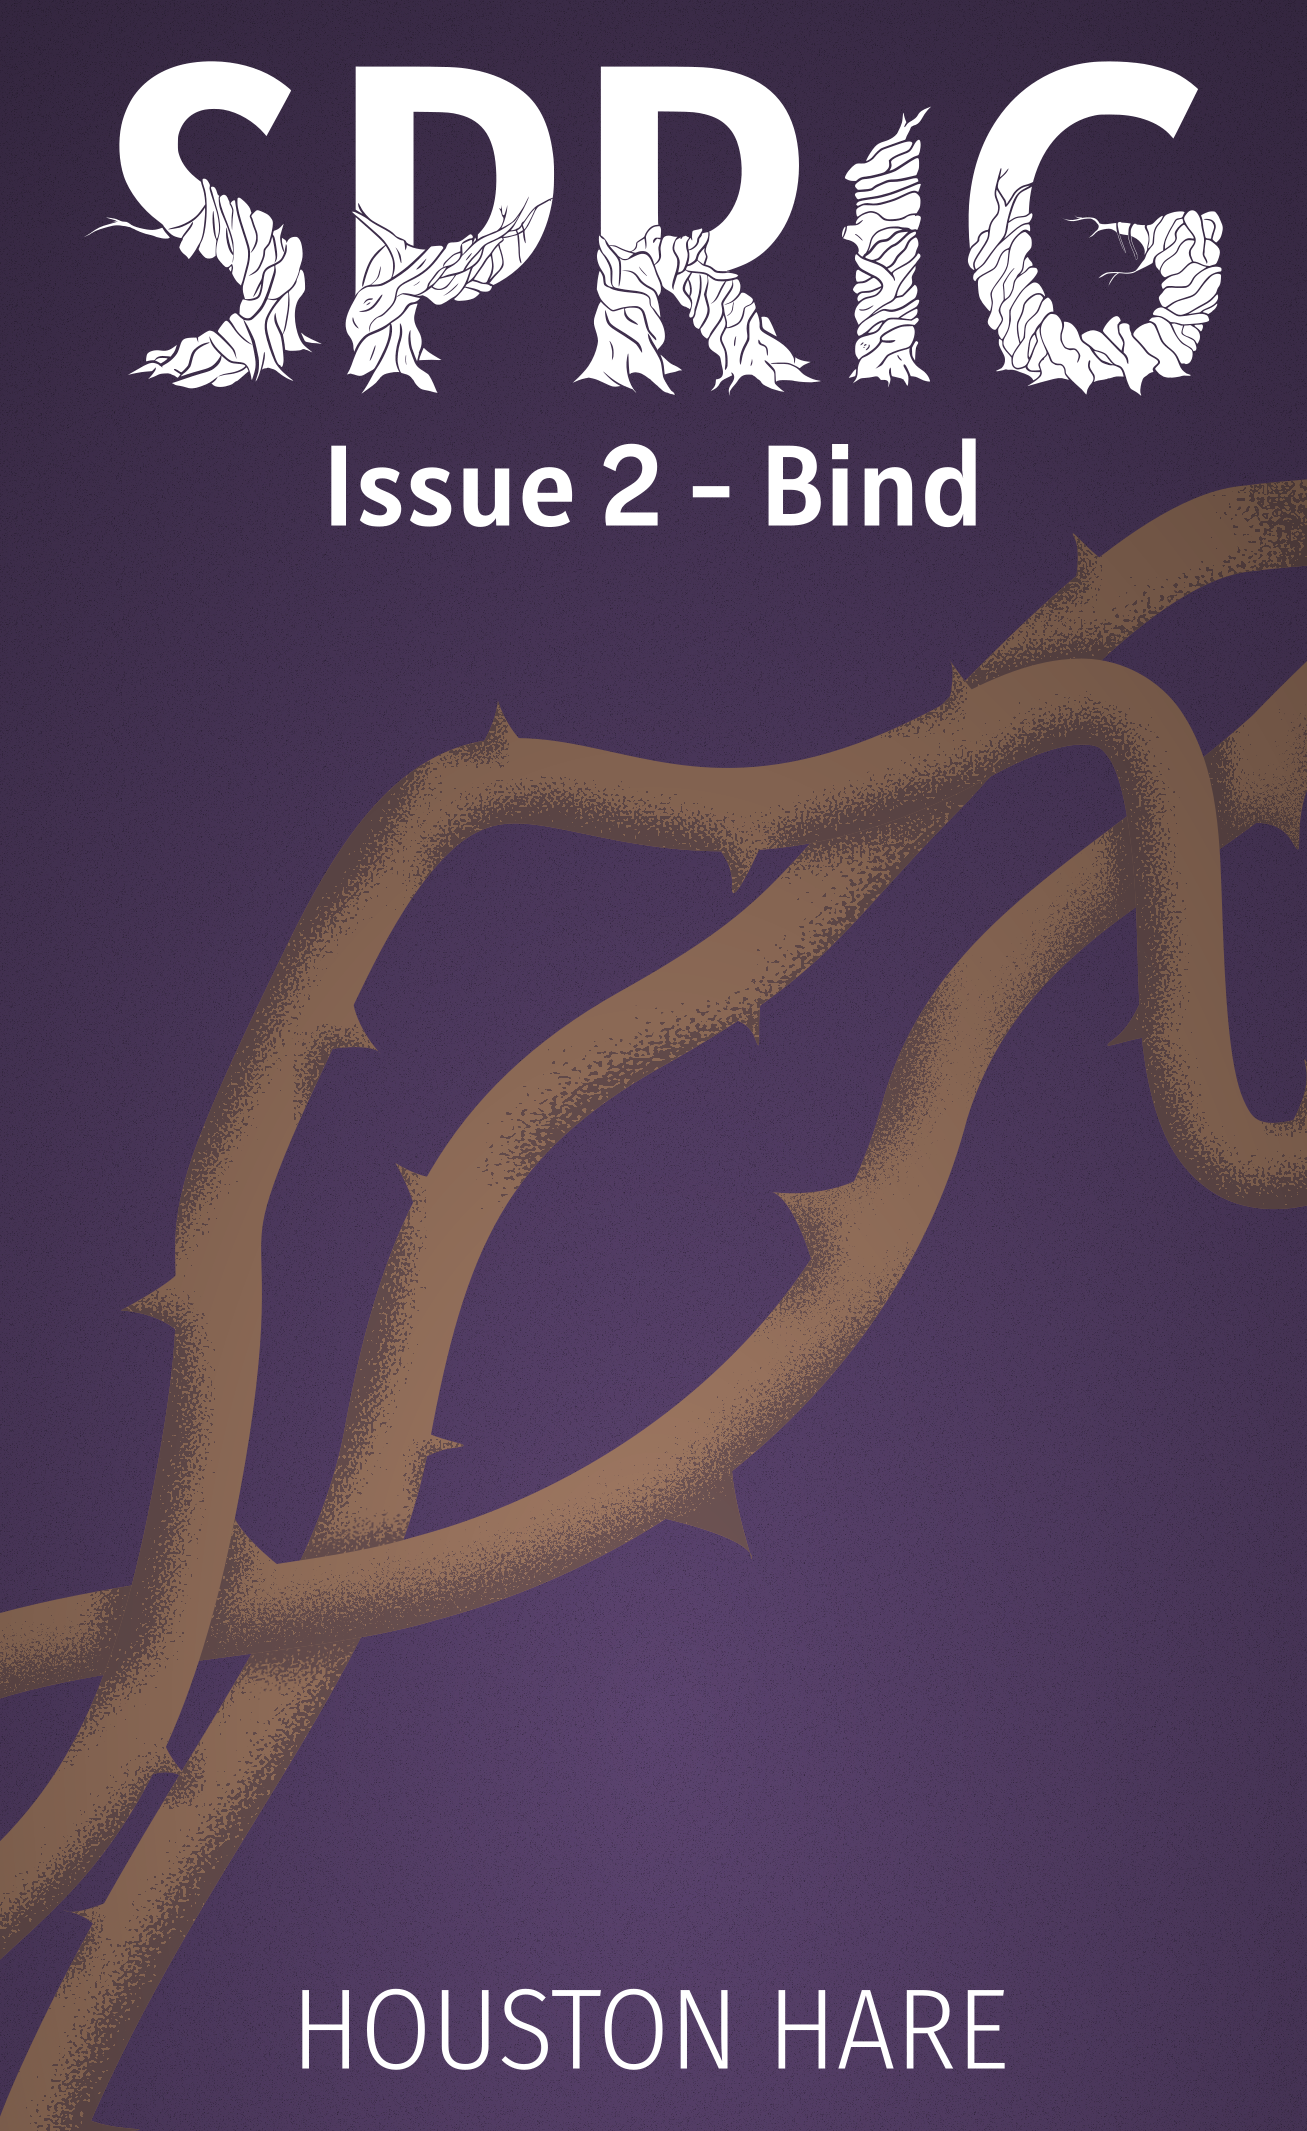 Sprig (Issue 2 - Bind) Release!